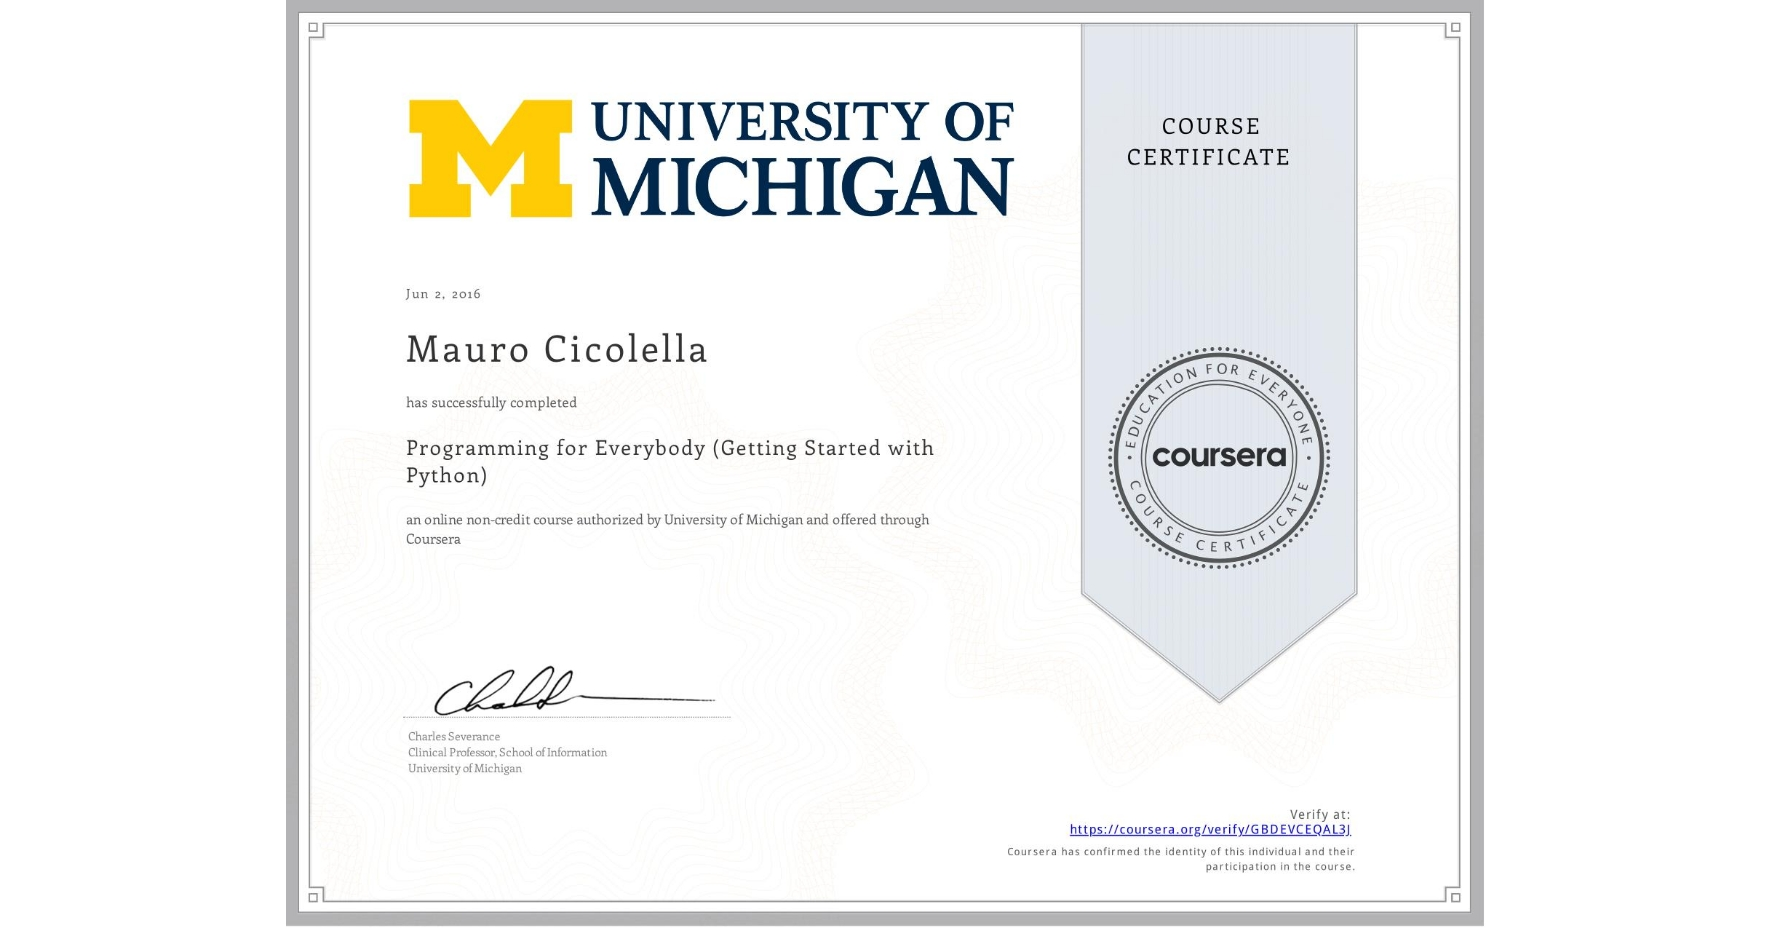 View certificate for Mauro Cicolella, Programming for Everybody (Getting Started with Python), an online non-credit course authorized by University of Michigan and offered through Coursera